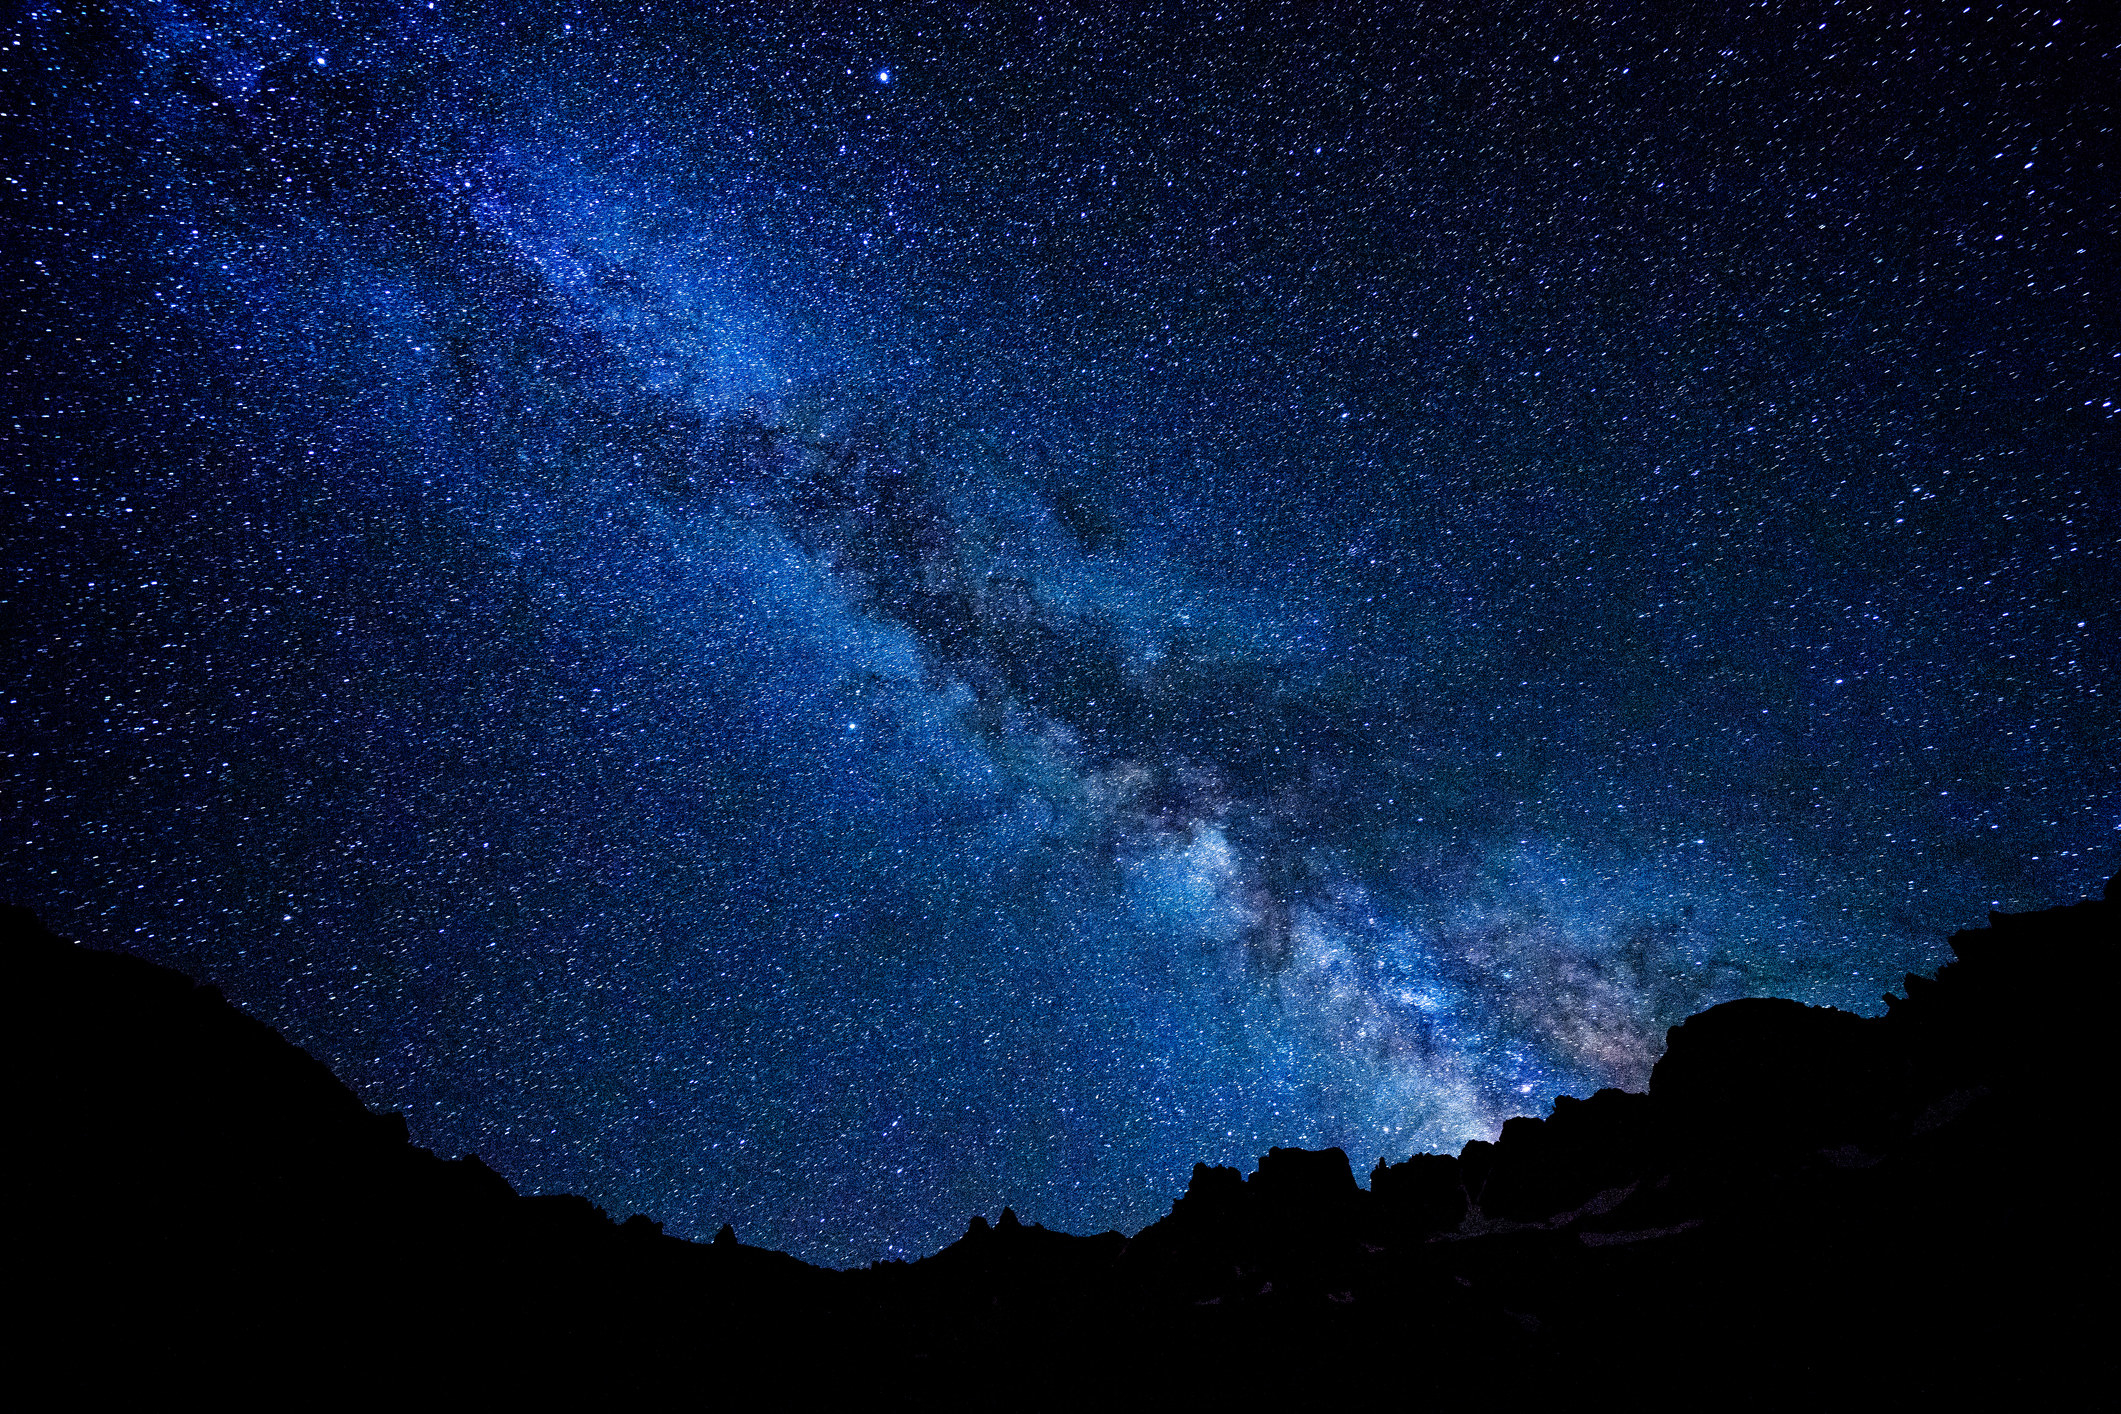 Scenic landscape showing space with stars and the Milky Way with rugged mountain silhouettes